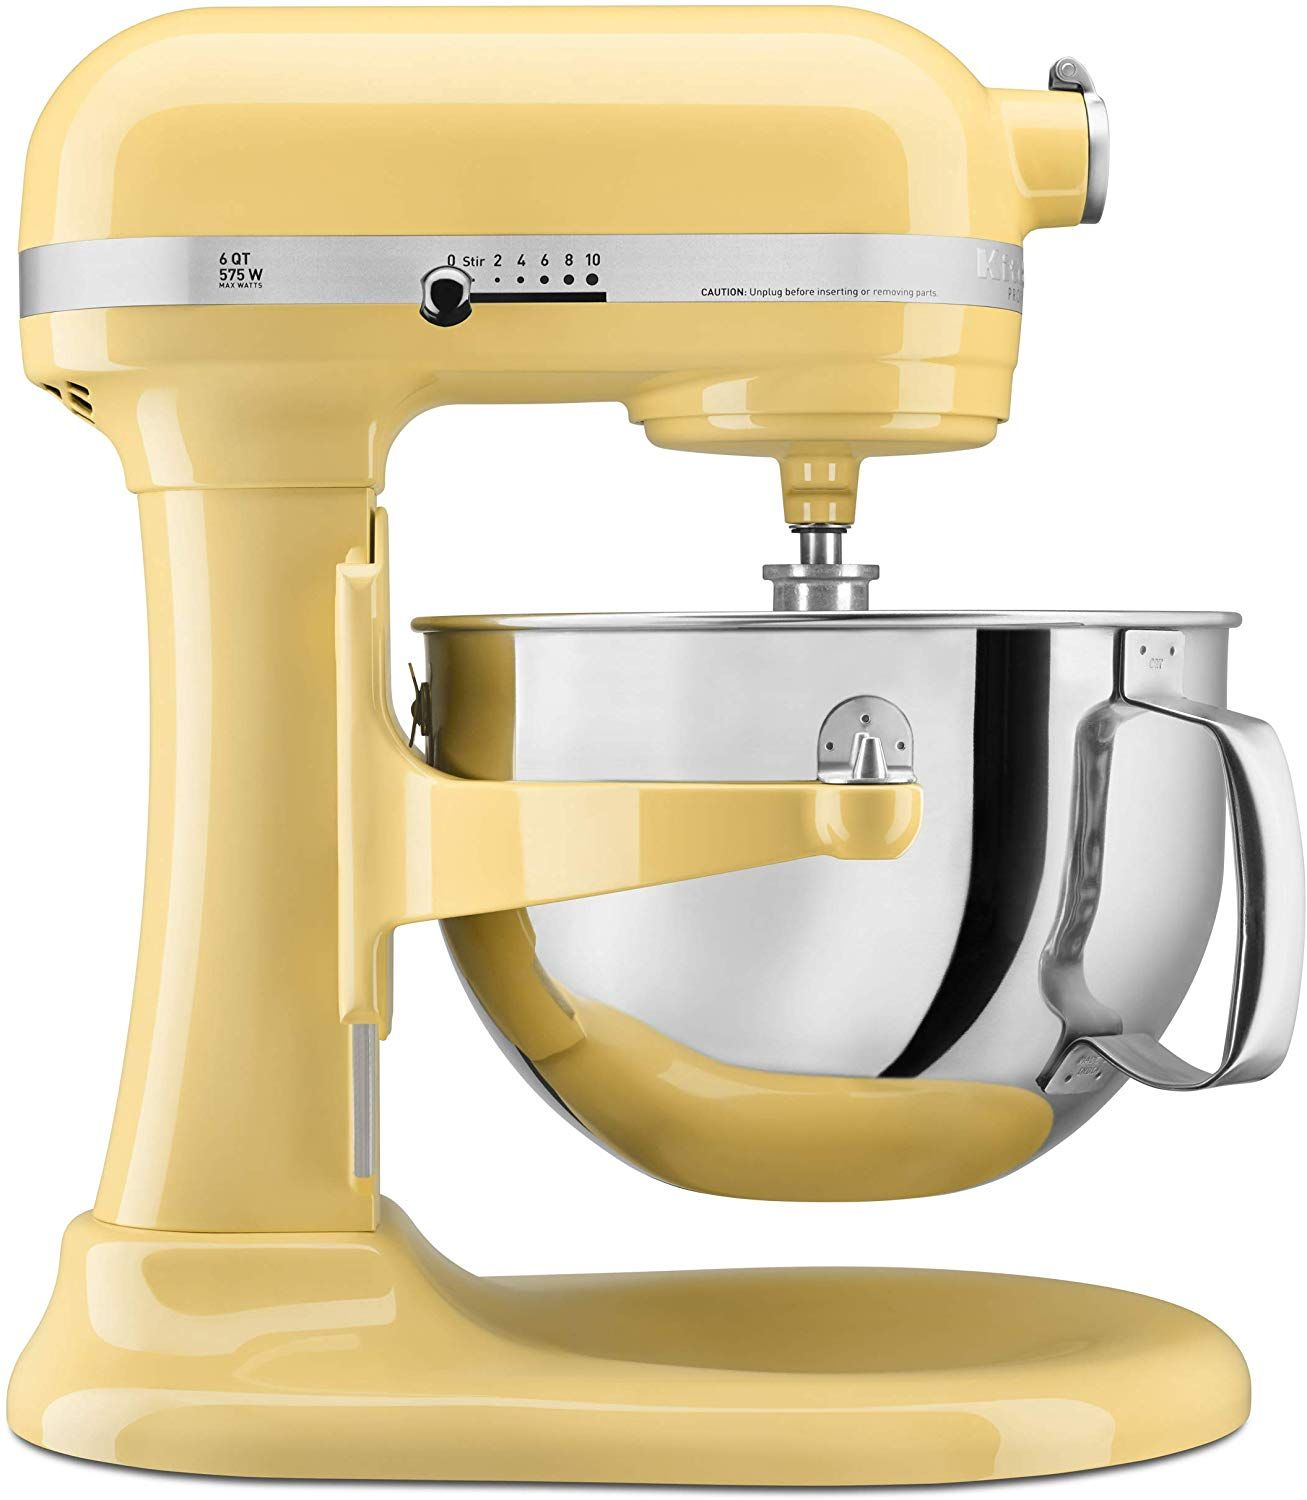 Best stand mixer for baking the kitchenaid professional